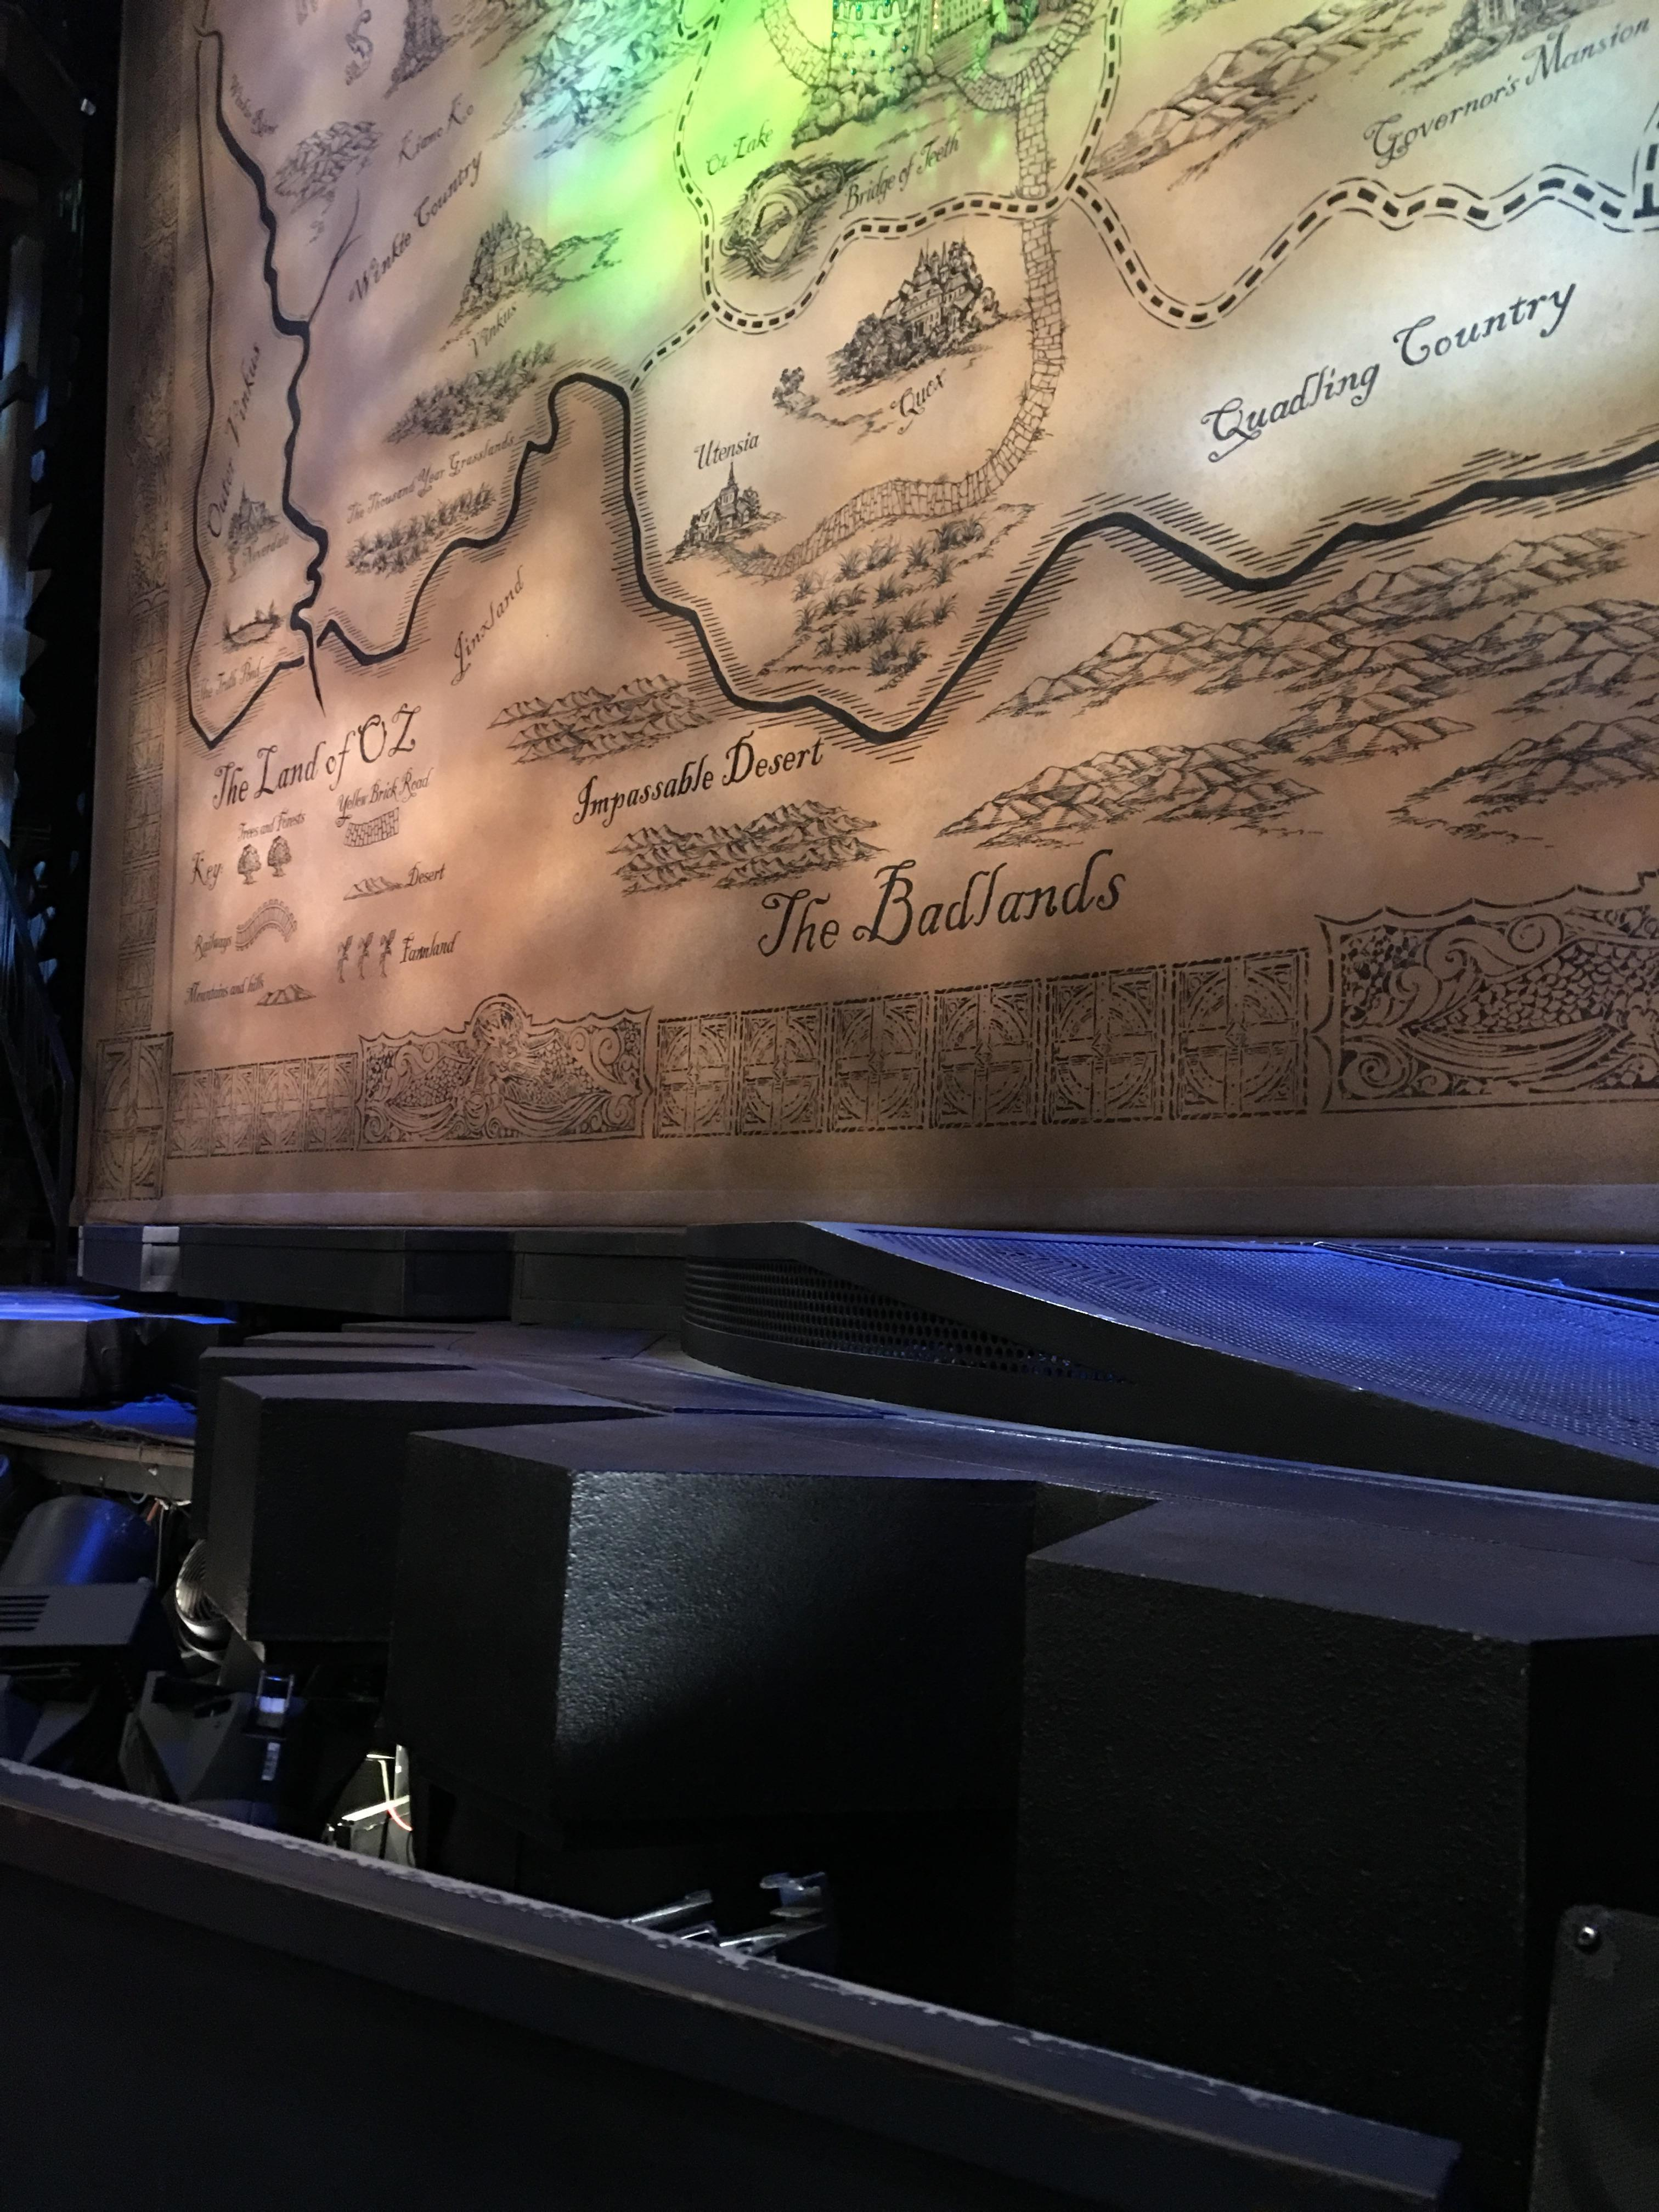 Gershwin Theatre Section Orchestra C Row BB Seat 116